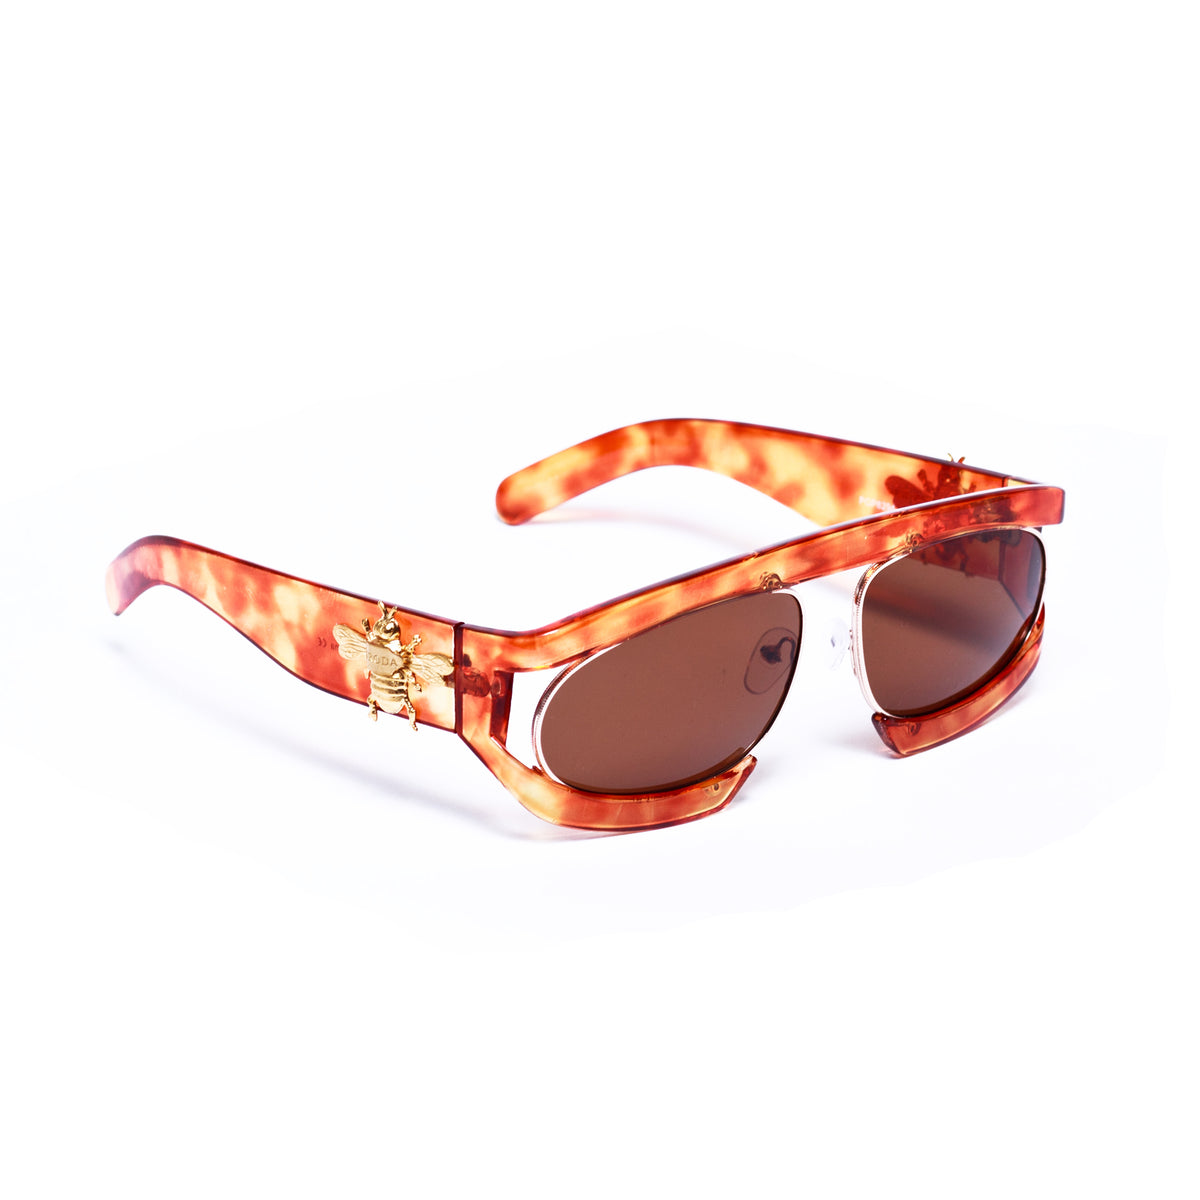 NEW POCONOS in Fire Blue  Eyewear Sunglasses Collection, Tnemnroda man- NRODA